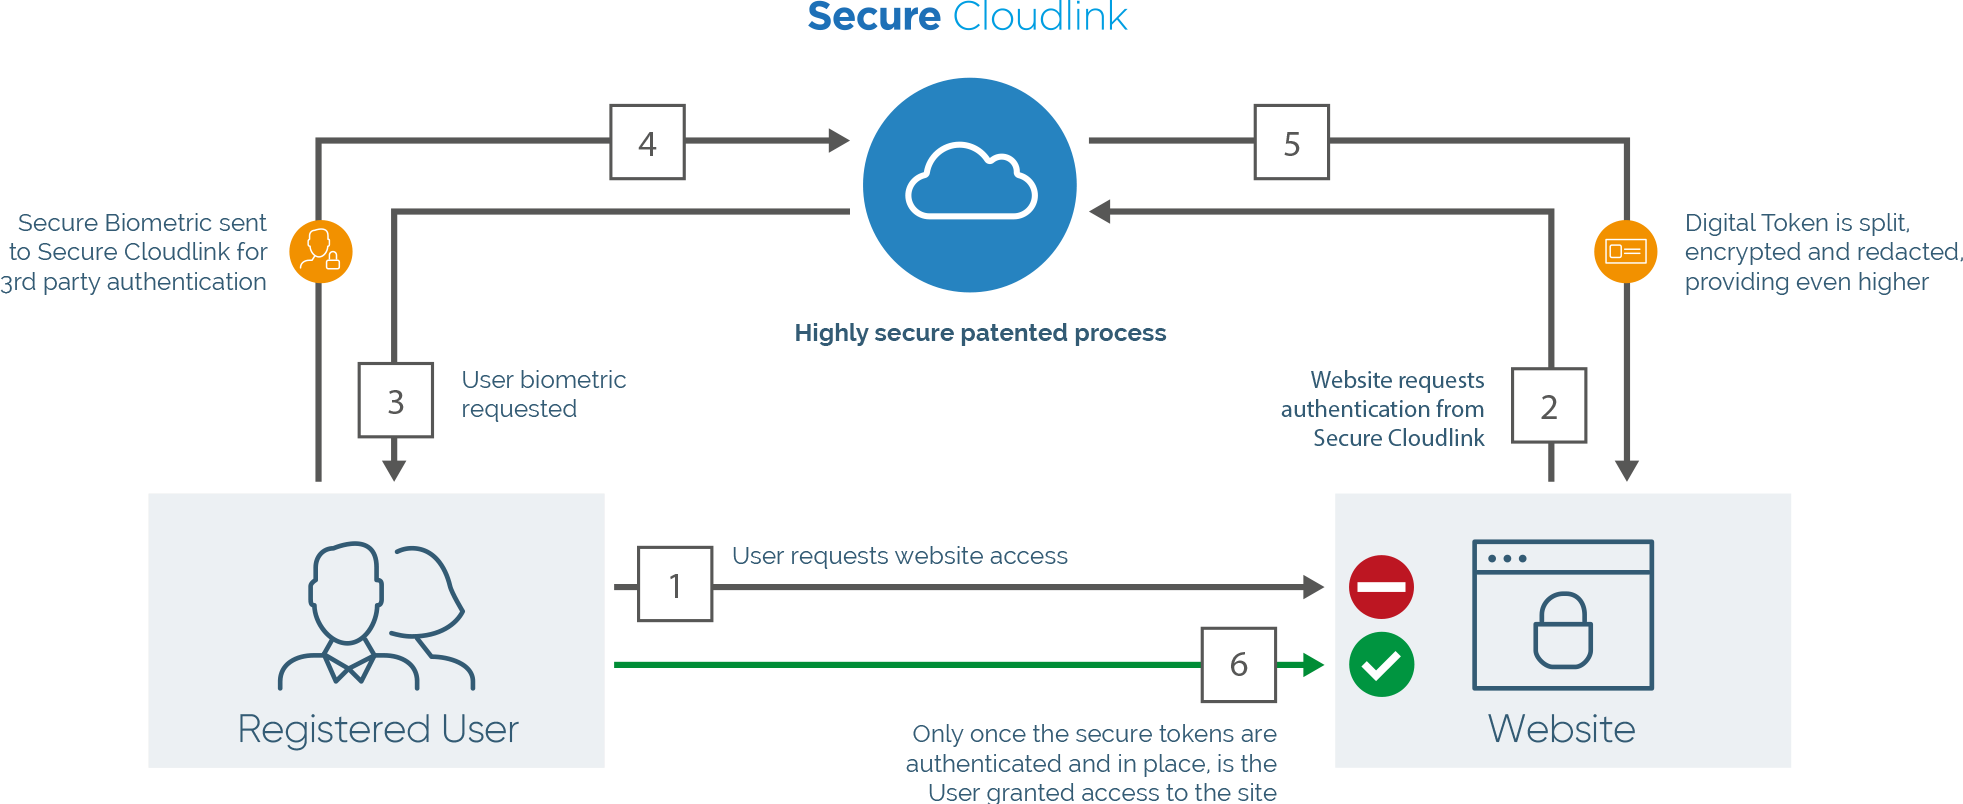 About: Secure Cloudlink